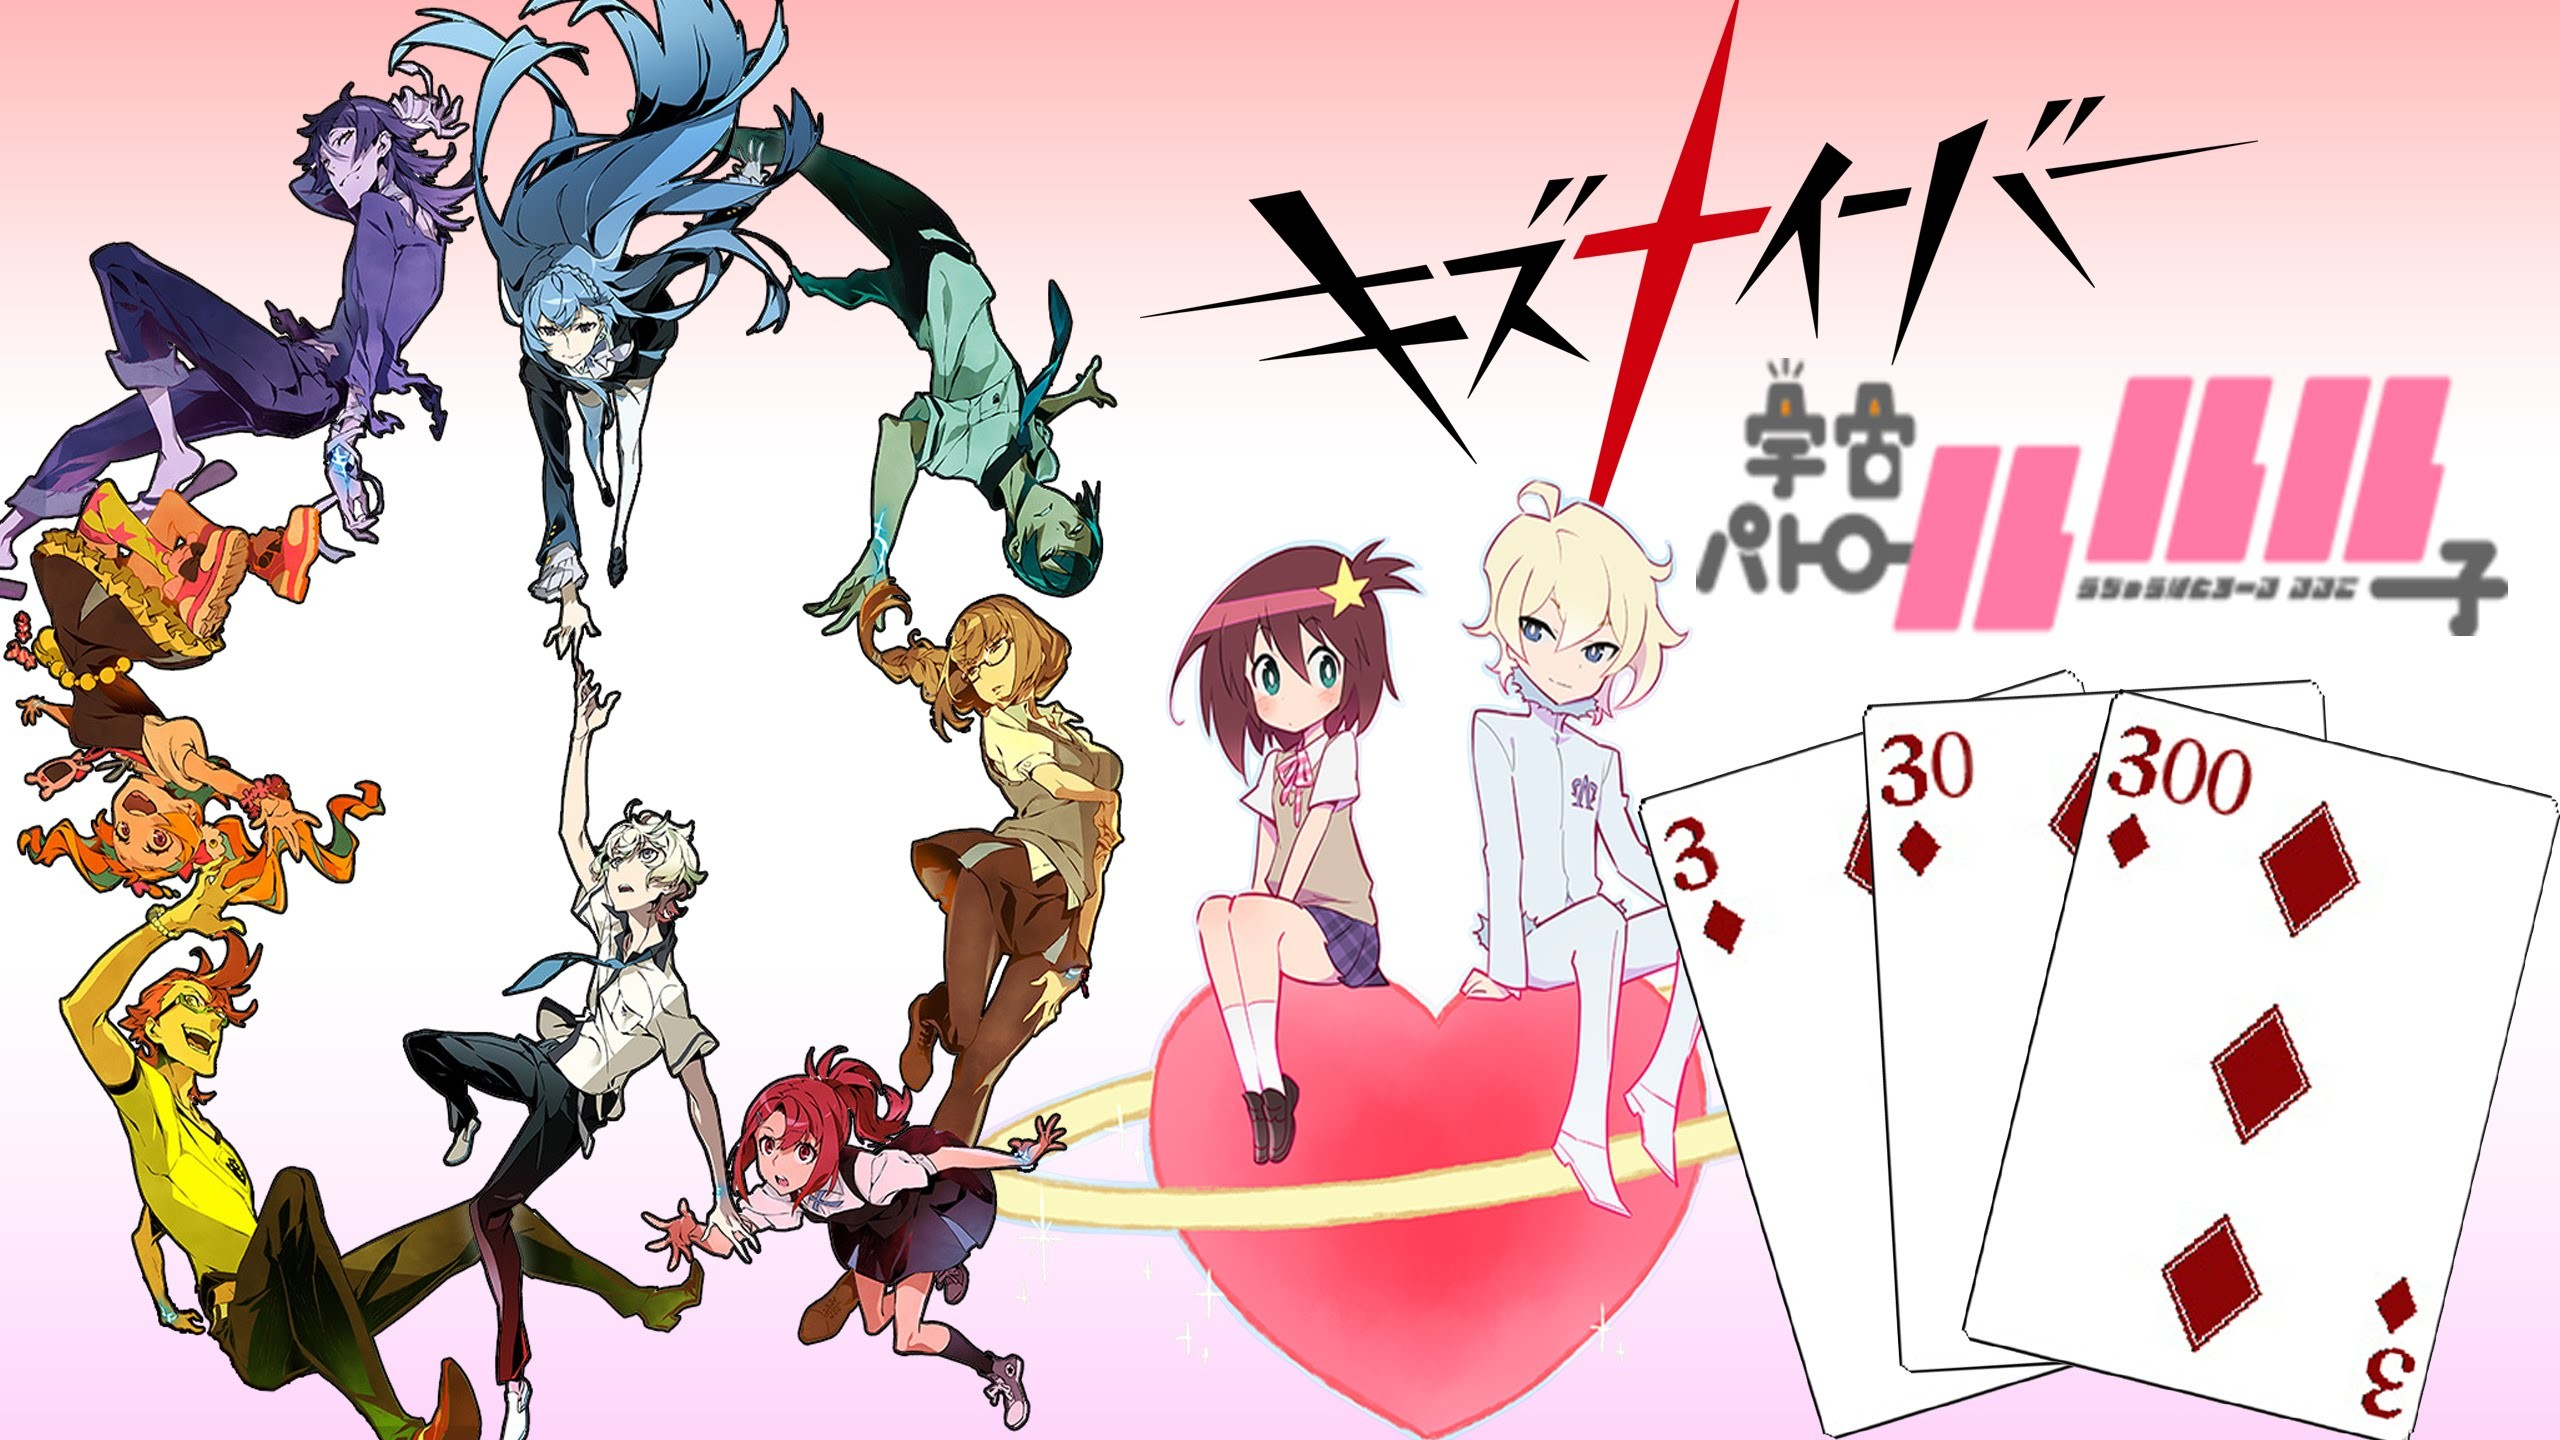 Review 3, 30, 600+: Kiznaiver and Space Patrol Luluco